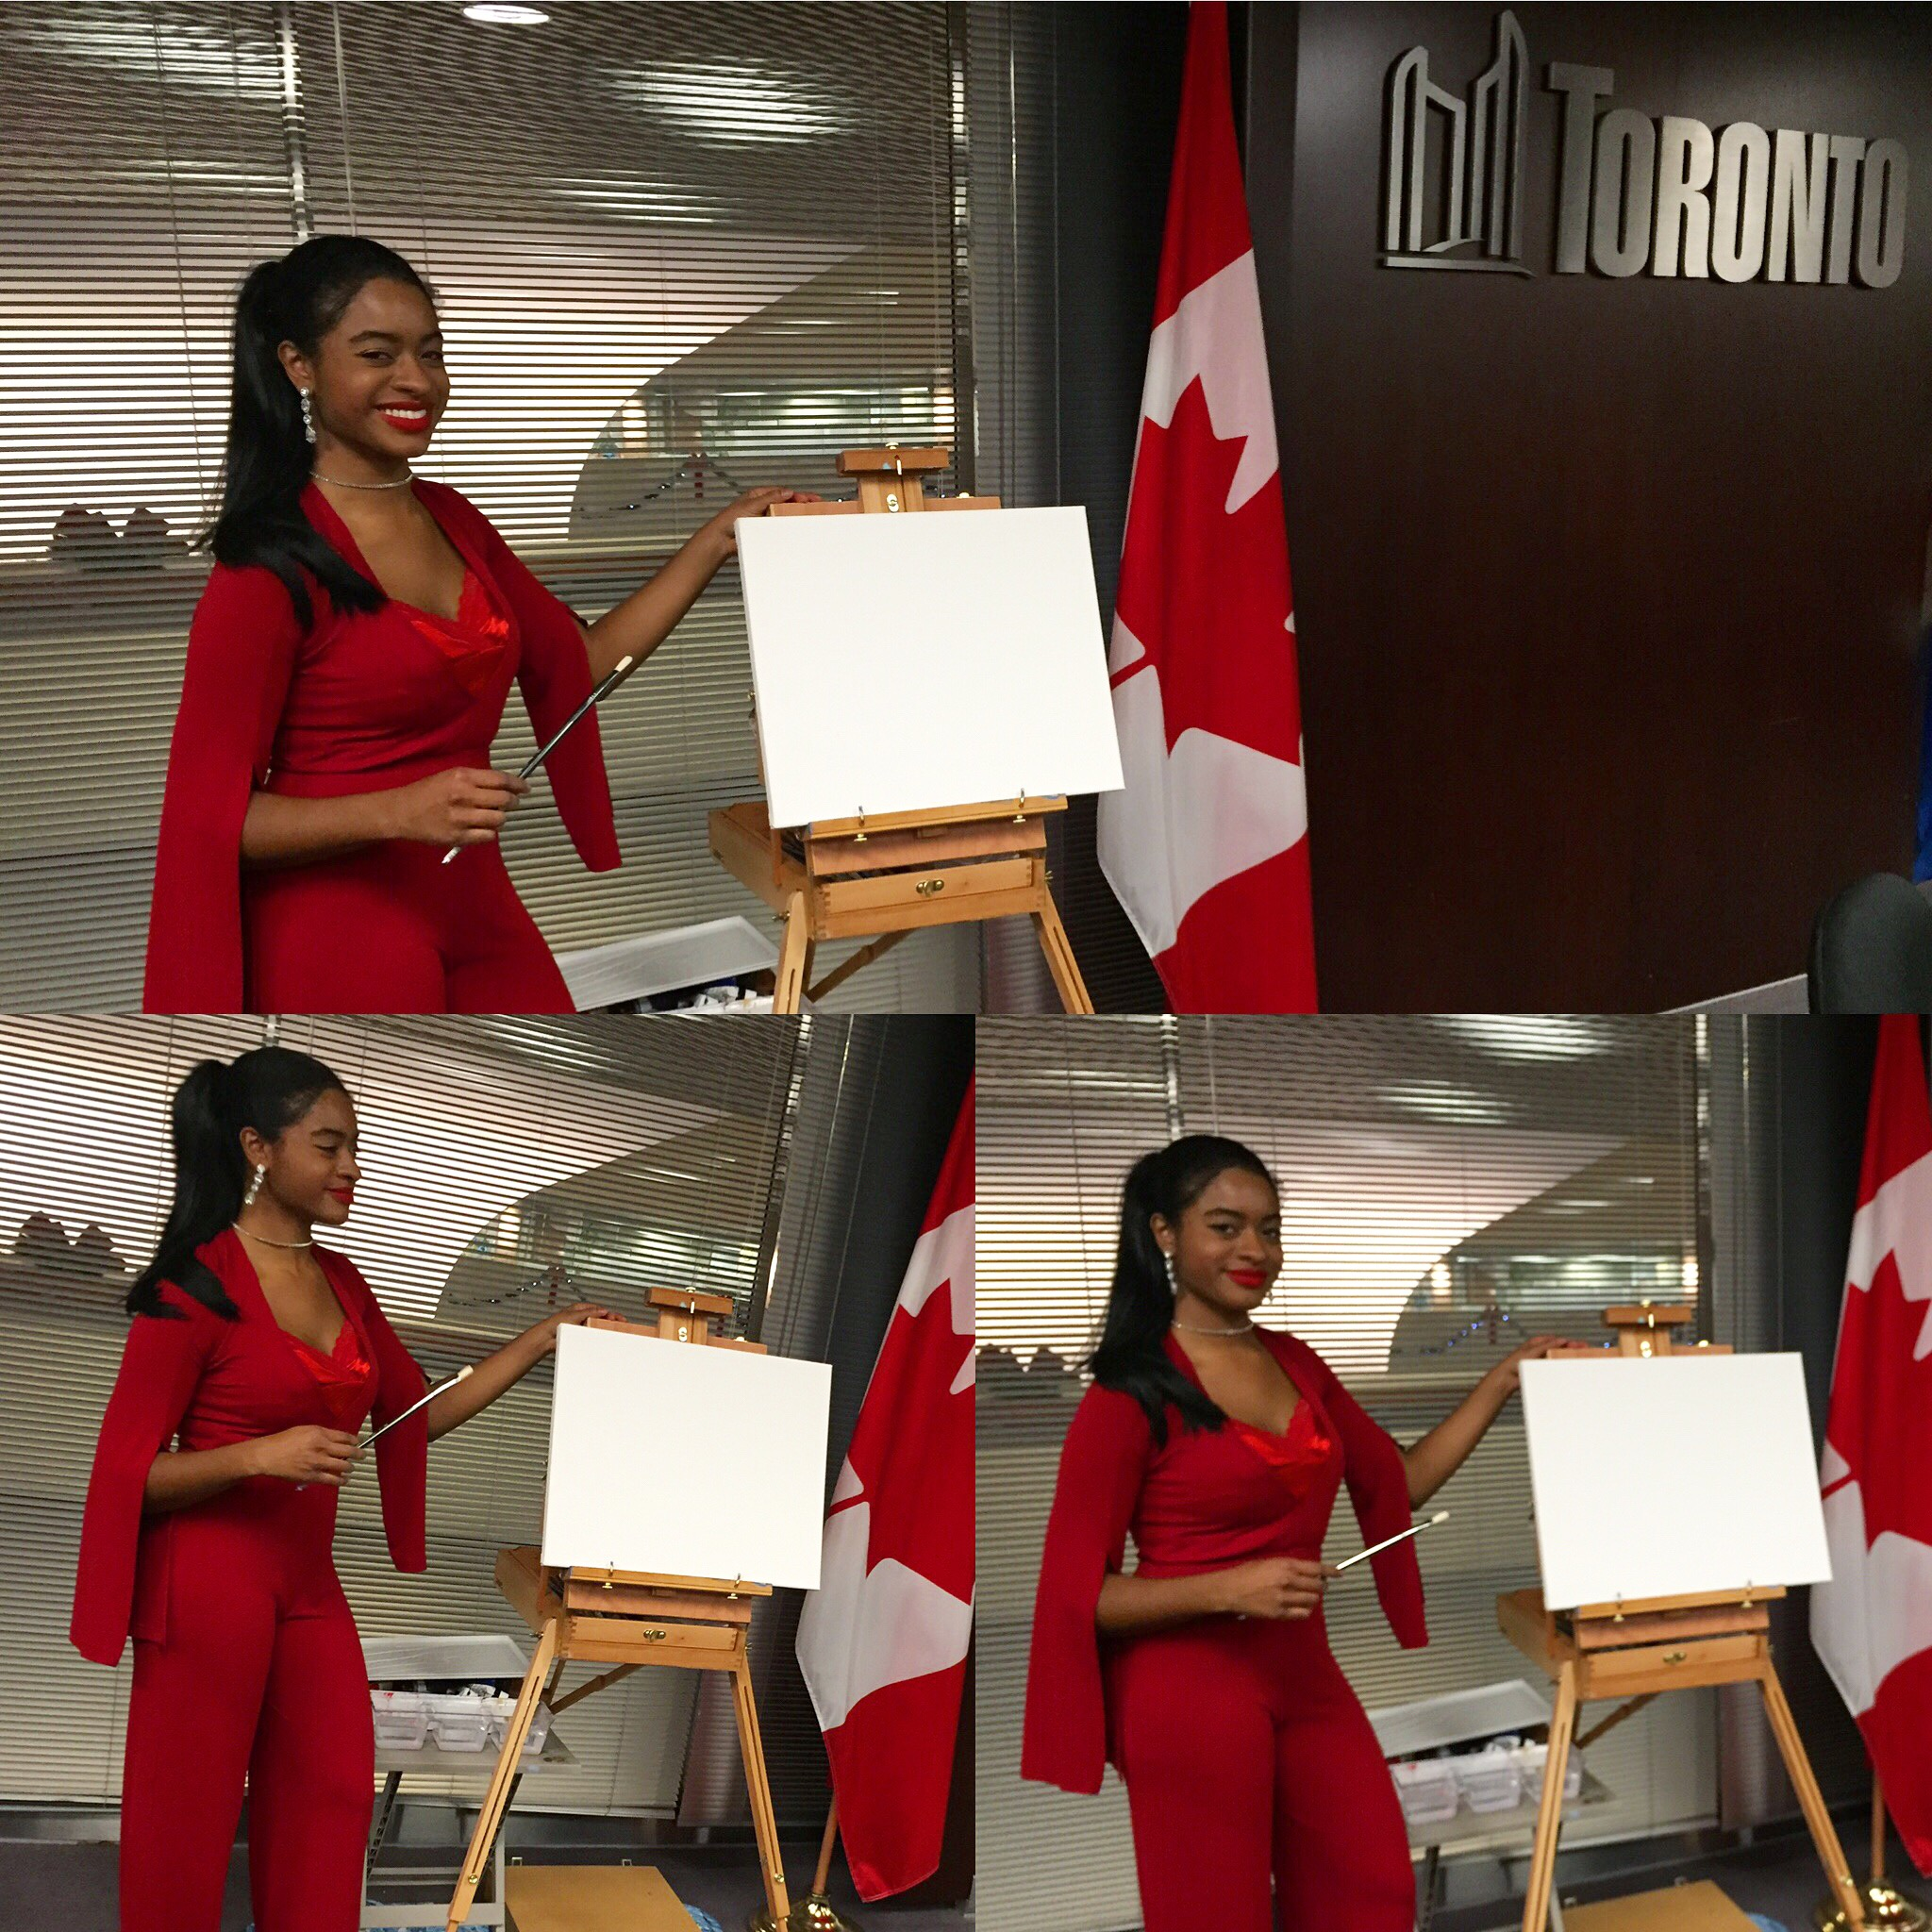 Painting Live at Toronto City Hall